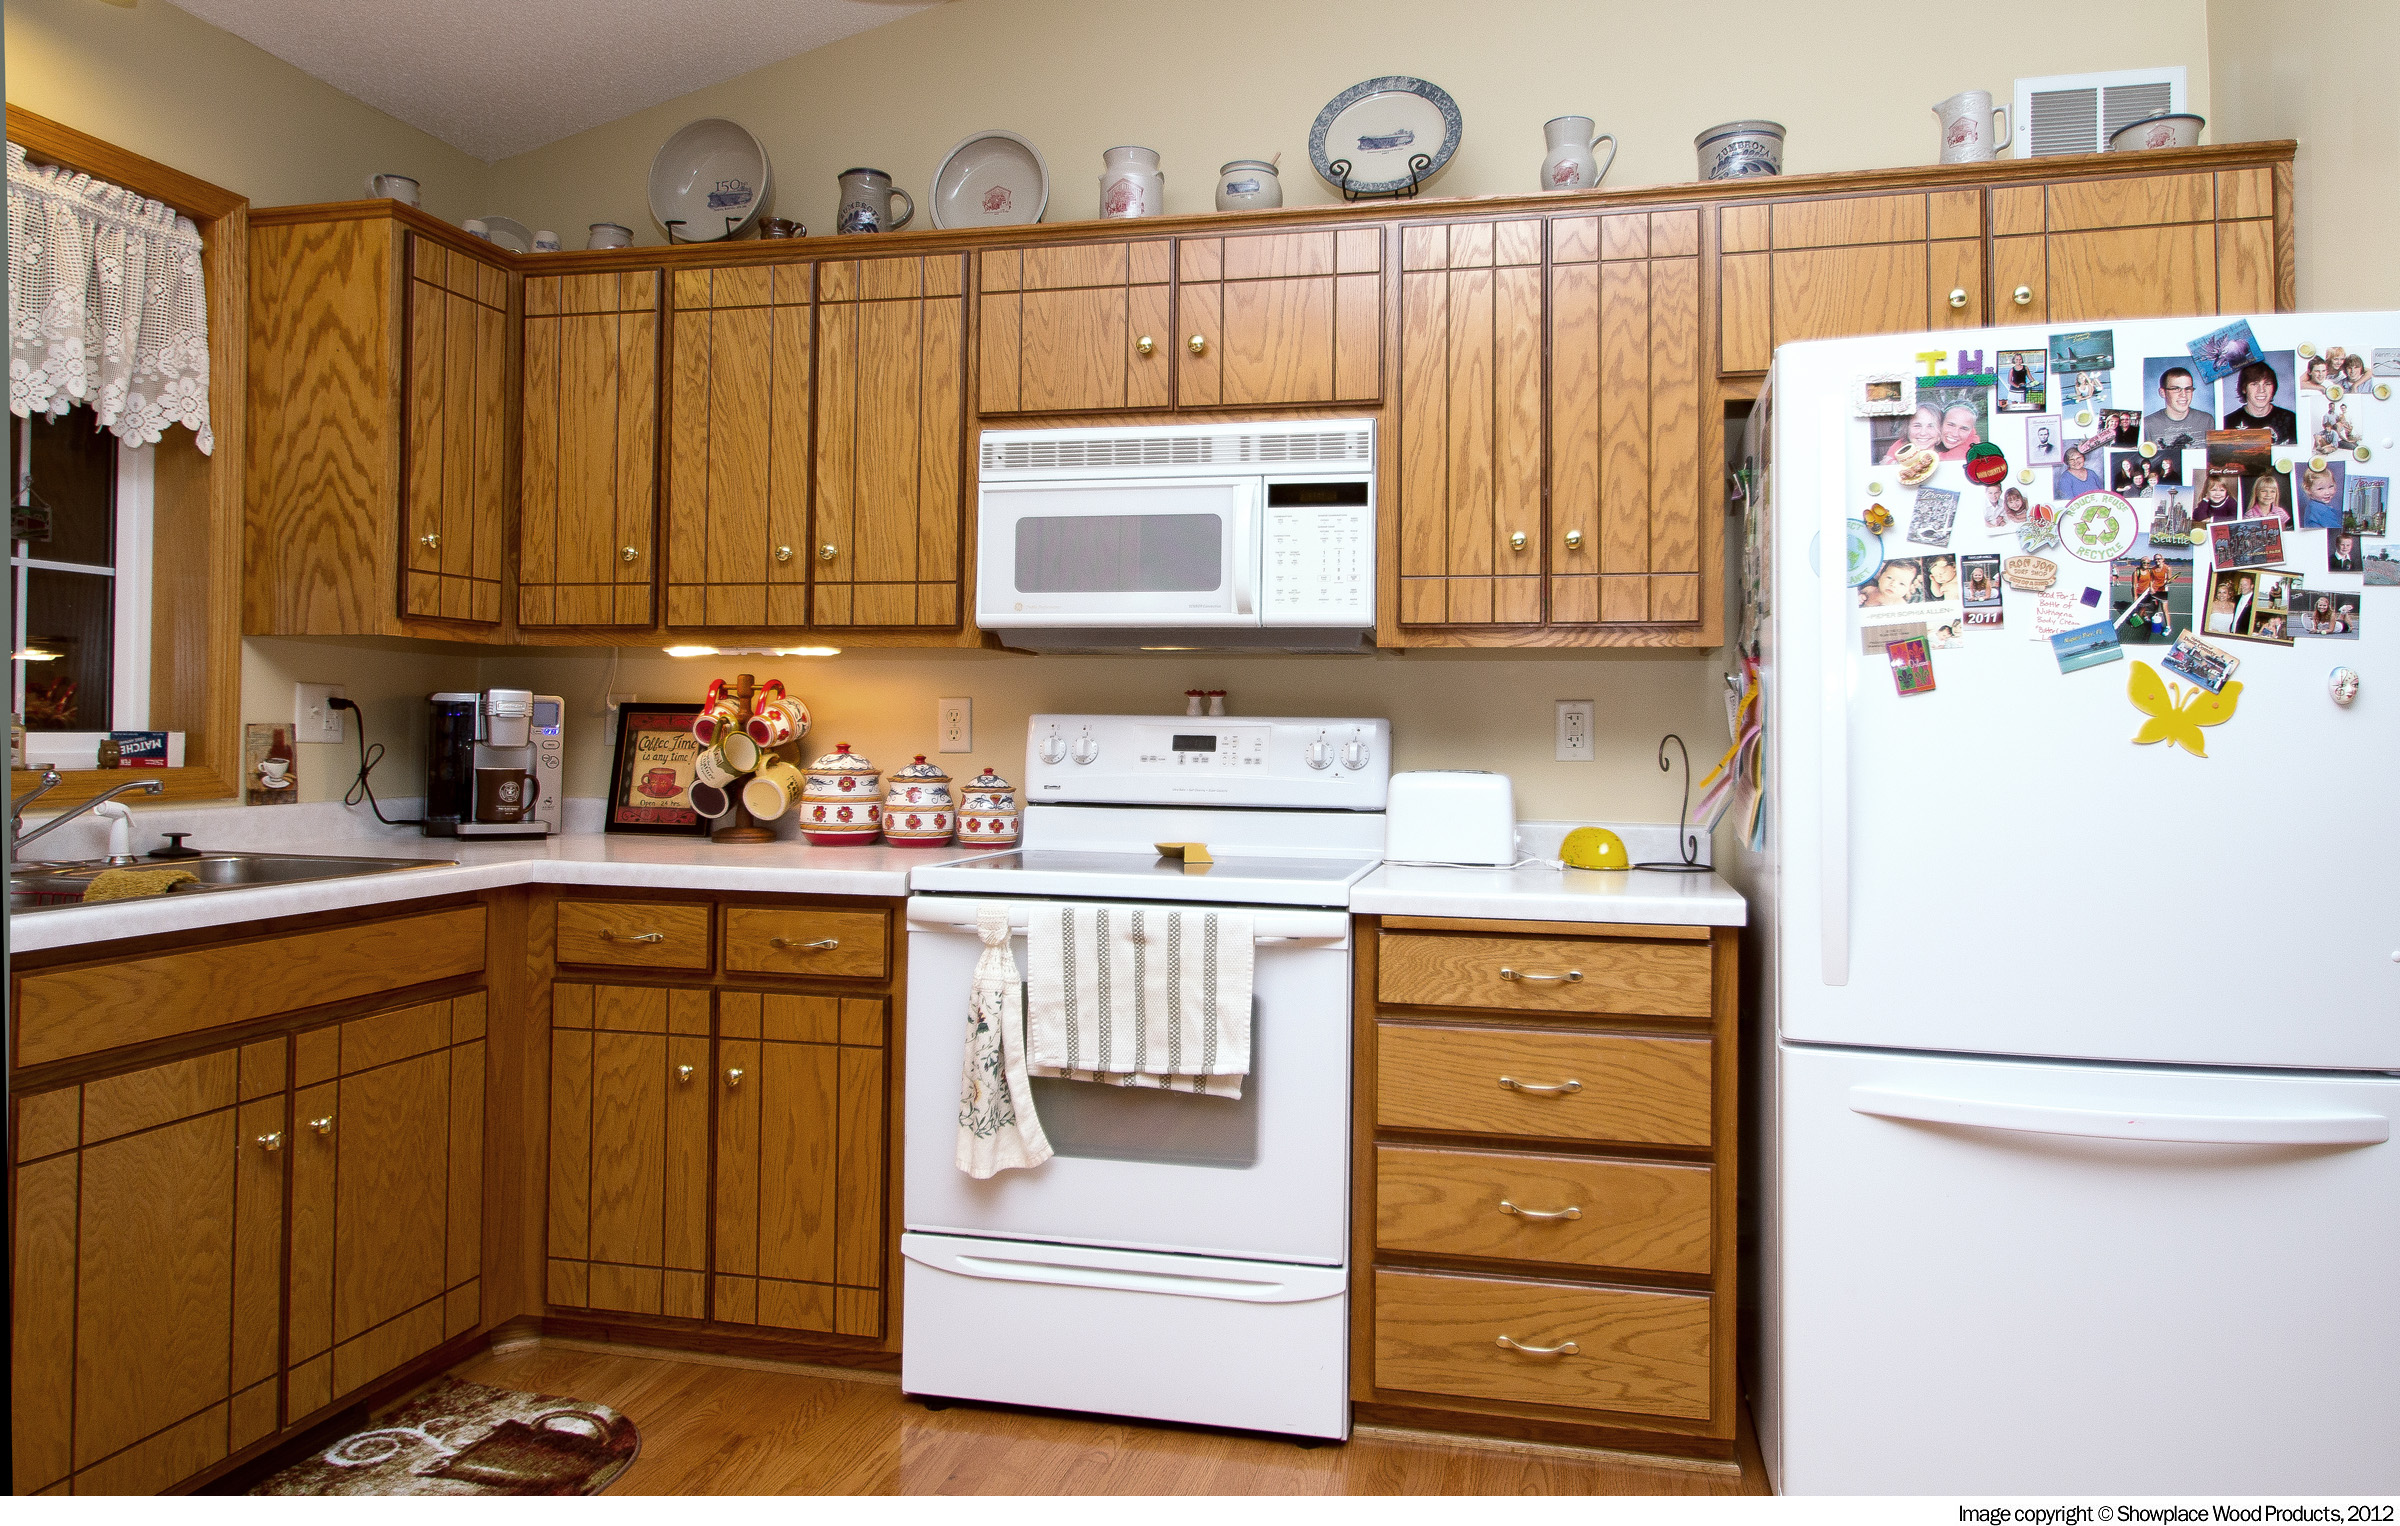 Refinishing kitchen cabinets renew kitchen cabinets for Kitchen cabinet refacing